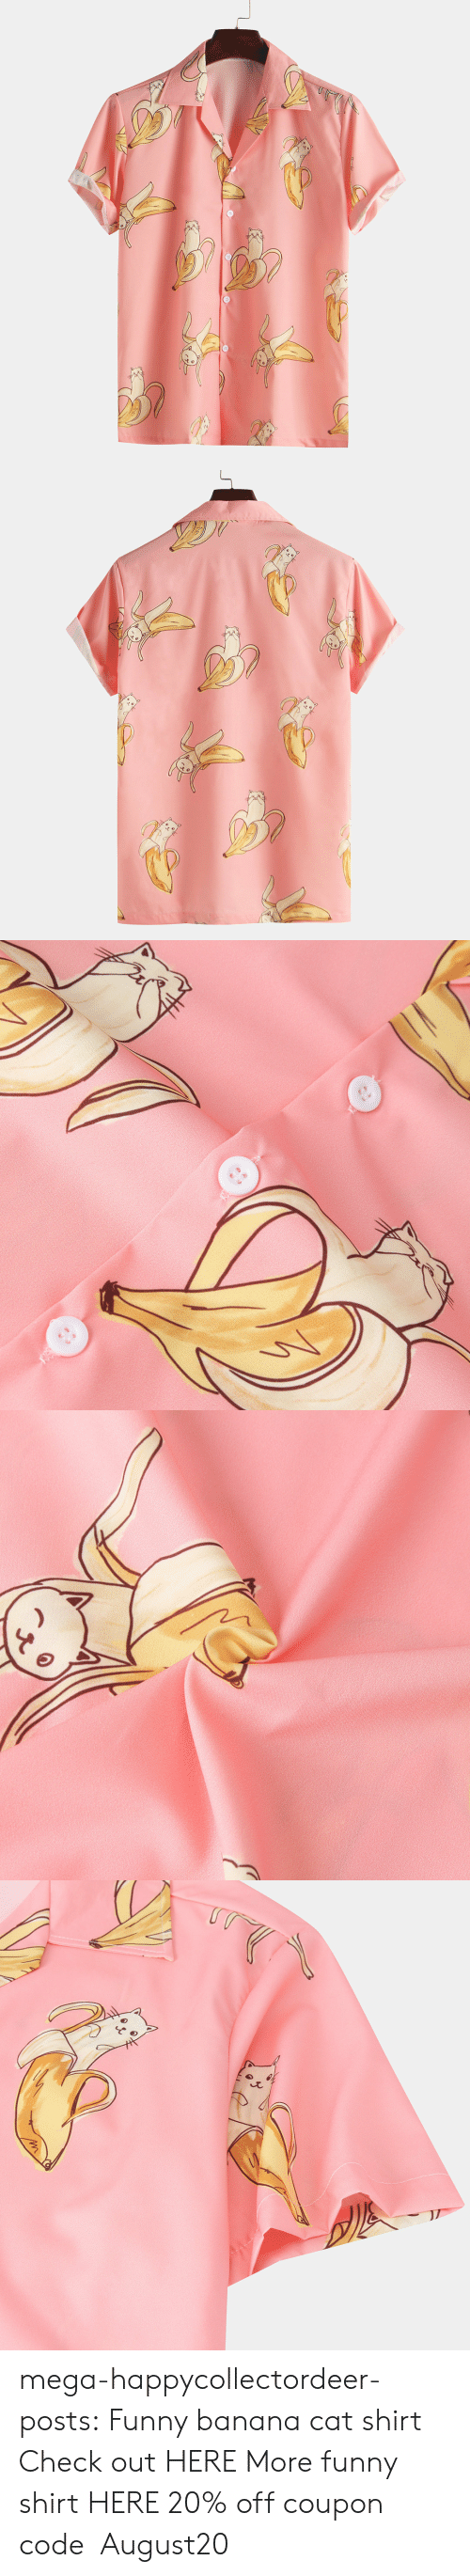 Funny, Tumblr, and Banana: mega-happycollectordeer-posts: Funny banana cat shirt Check out HERE More funny shirt HERE 20% off coupon code:August20